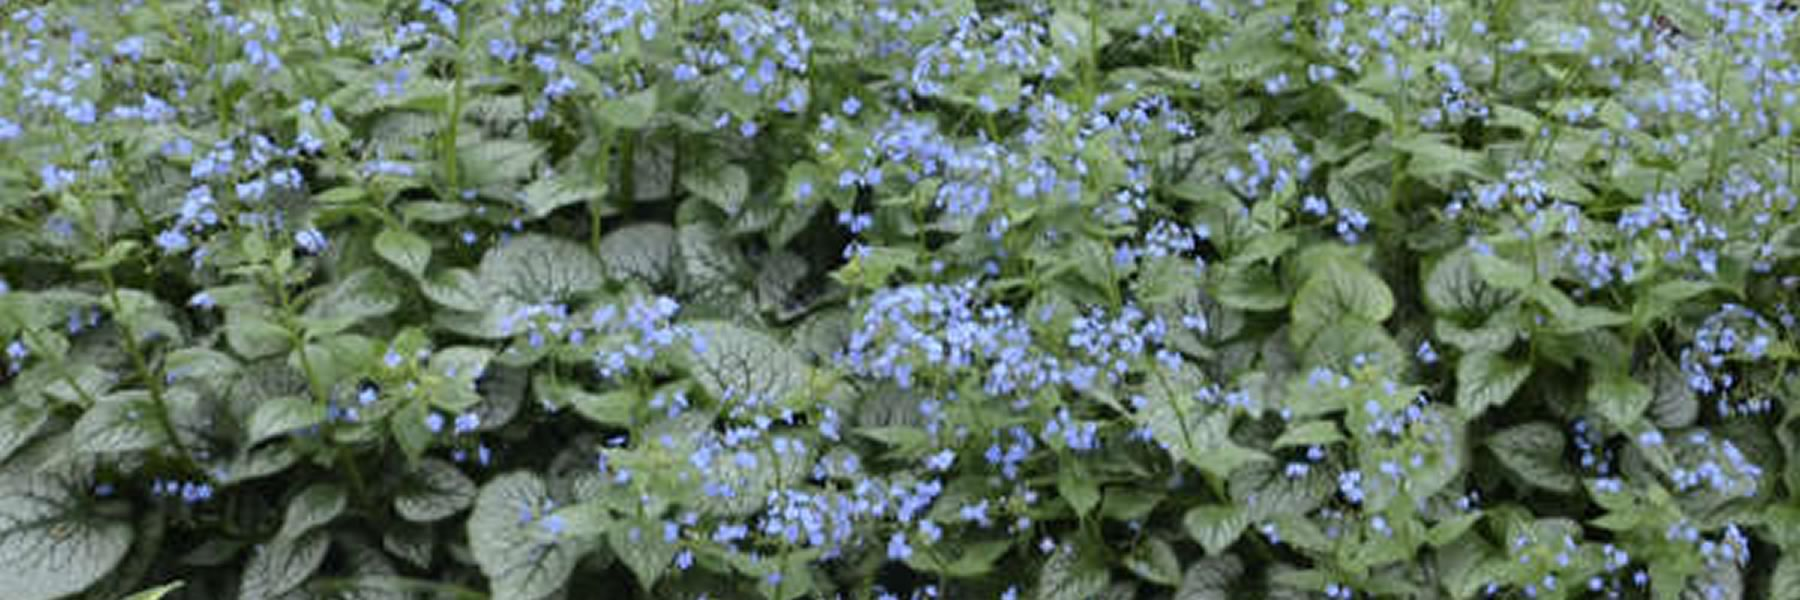 Brunnera Photo courtesy of Walters Gardens.